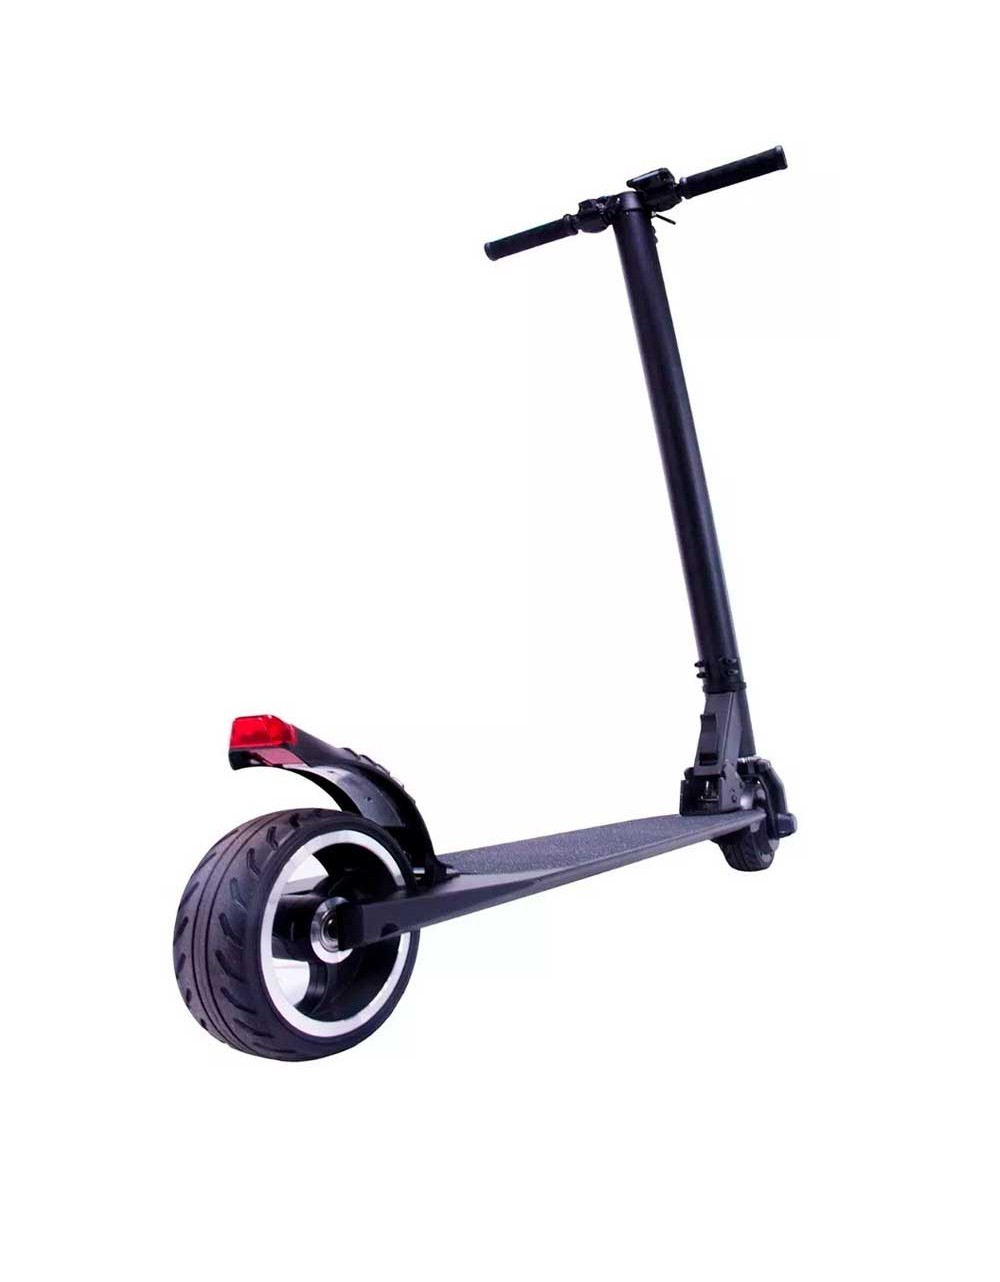 Scooter Electrico Centurfit Patin Plegable 24 V 23 Km/h 250w